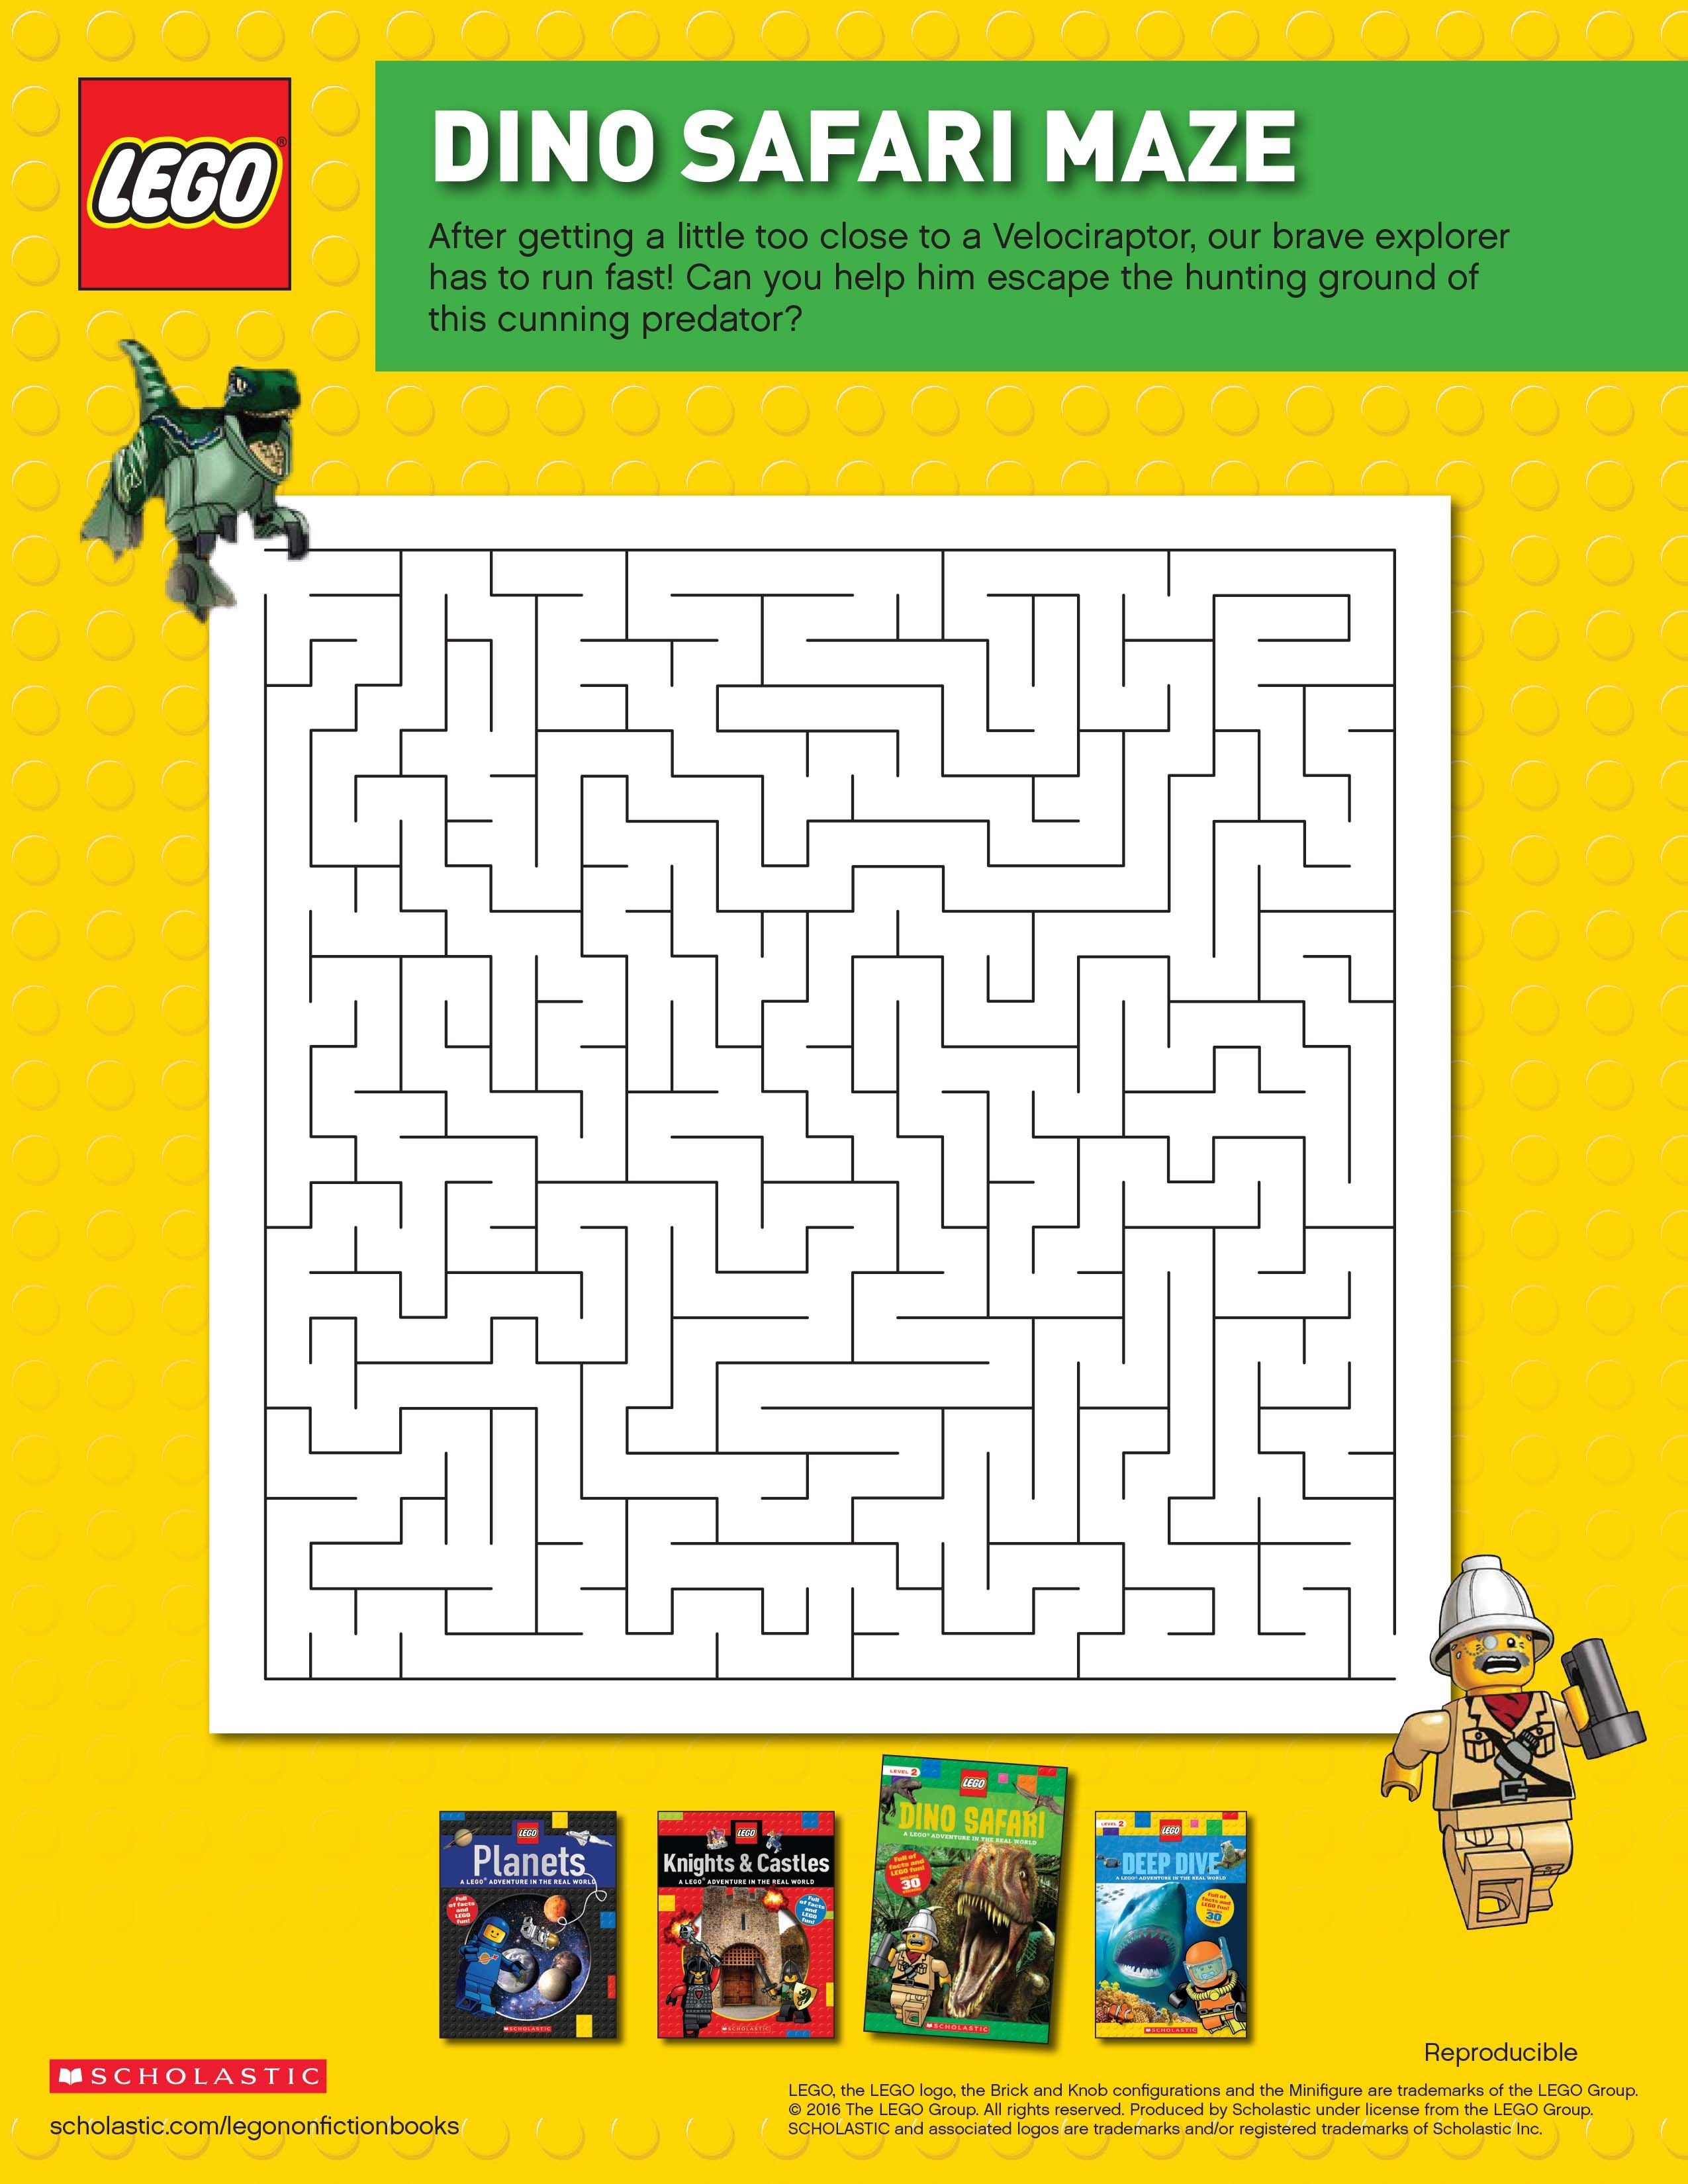 LEGO Nonfiction books combine the fun and humor of LEGO minifigures